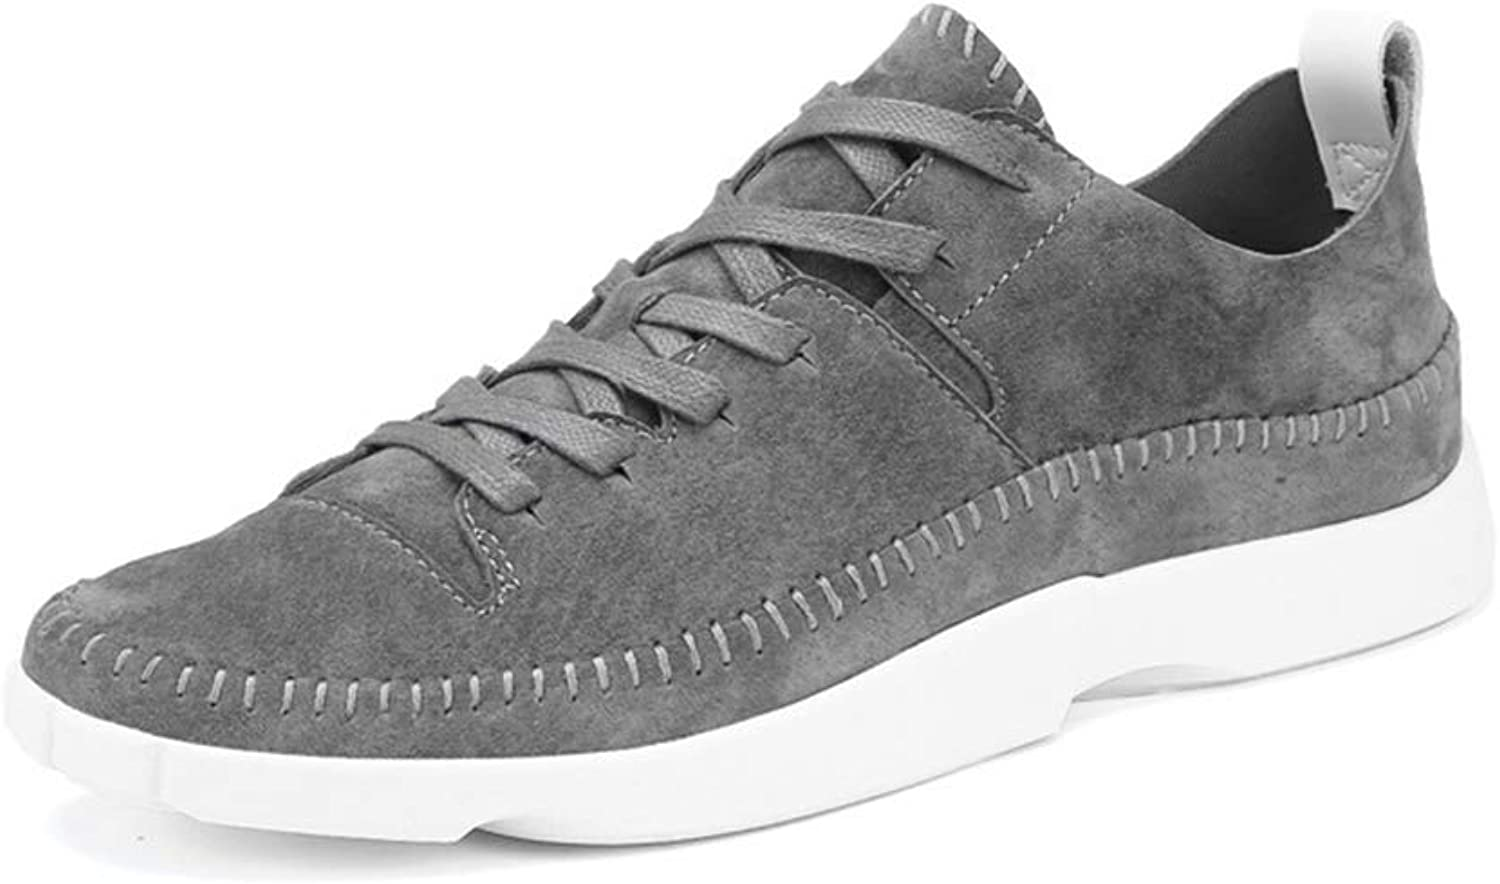 Men's shoes, Wild Lace-Up Low-Top shoes Spring Fall New Sports Casual shoes Academy Running shoes,A,44